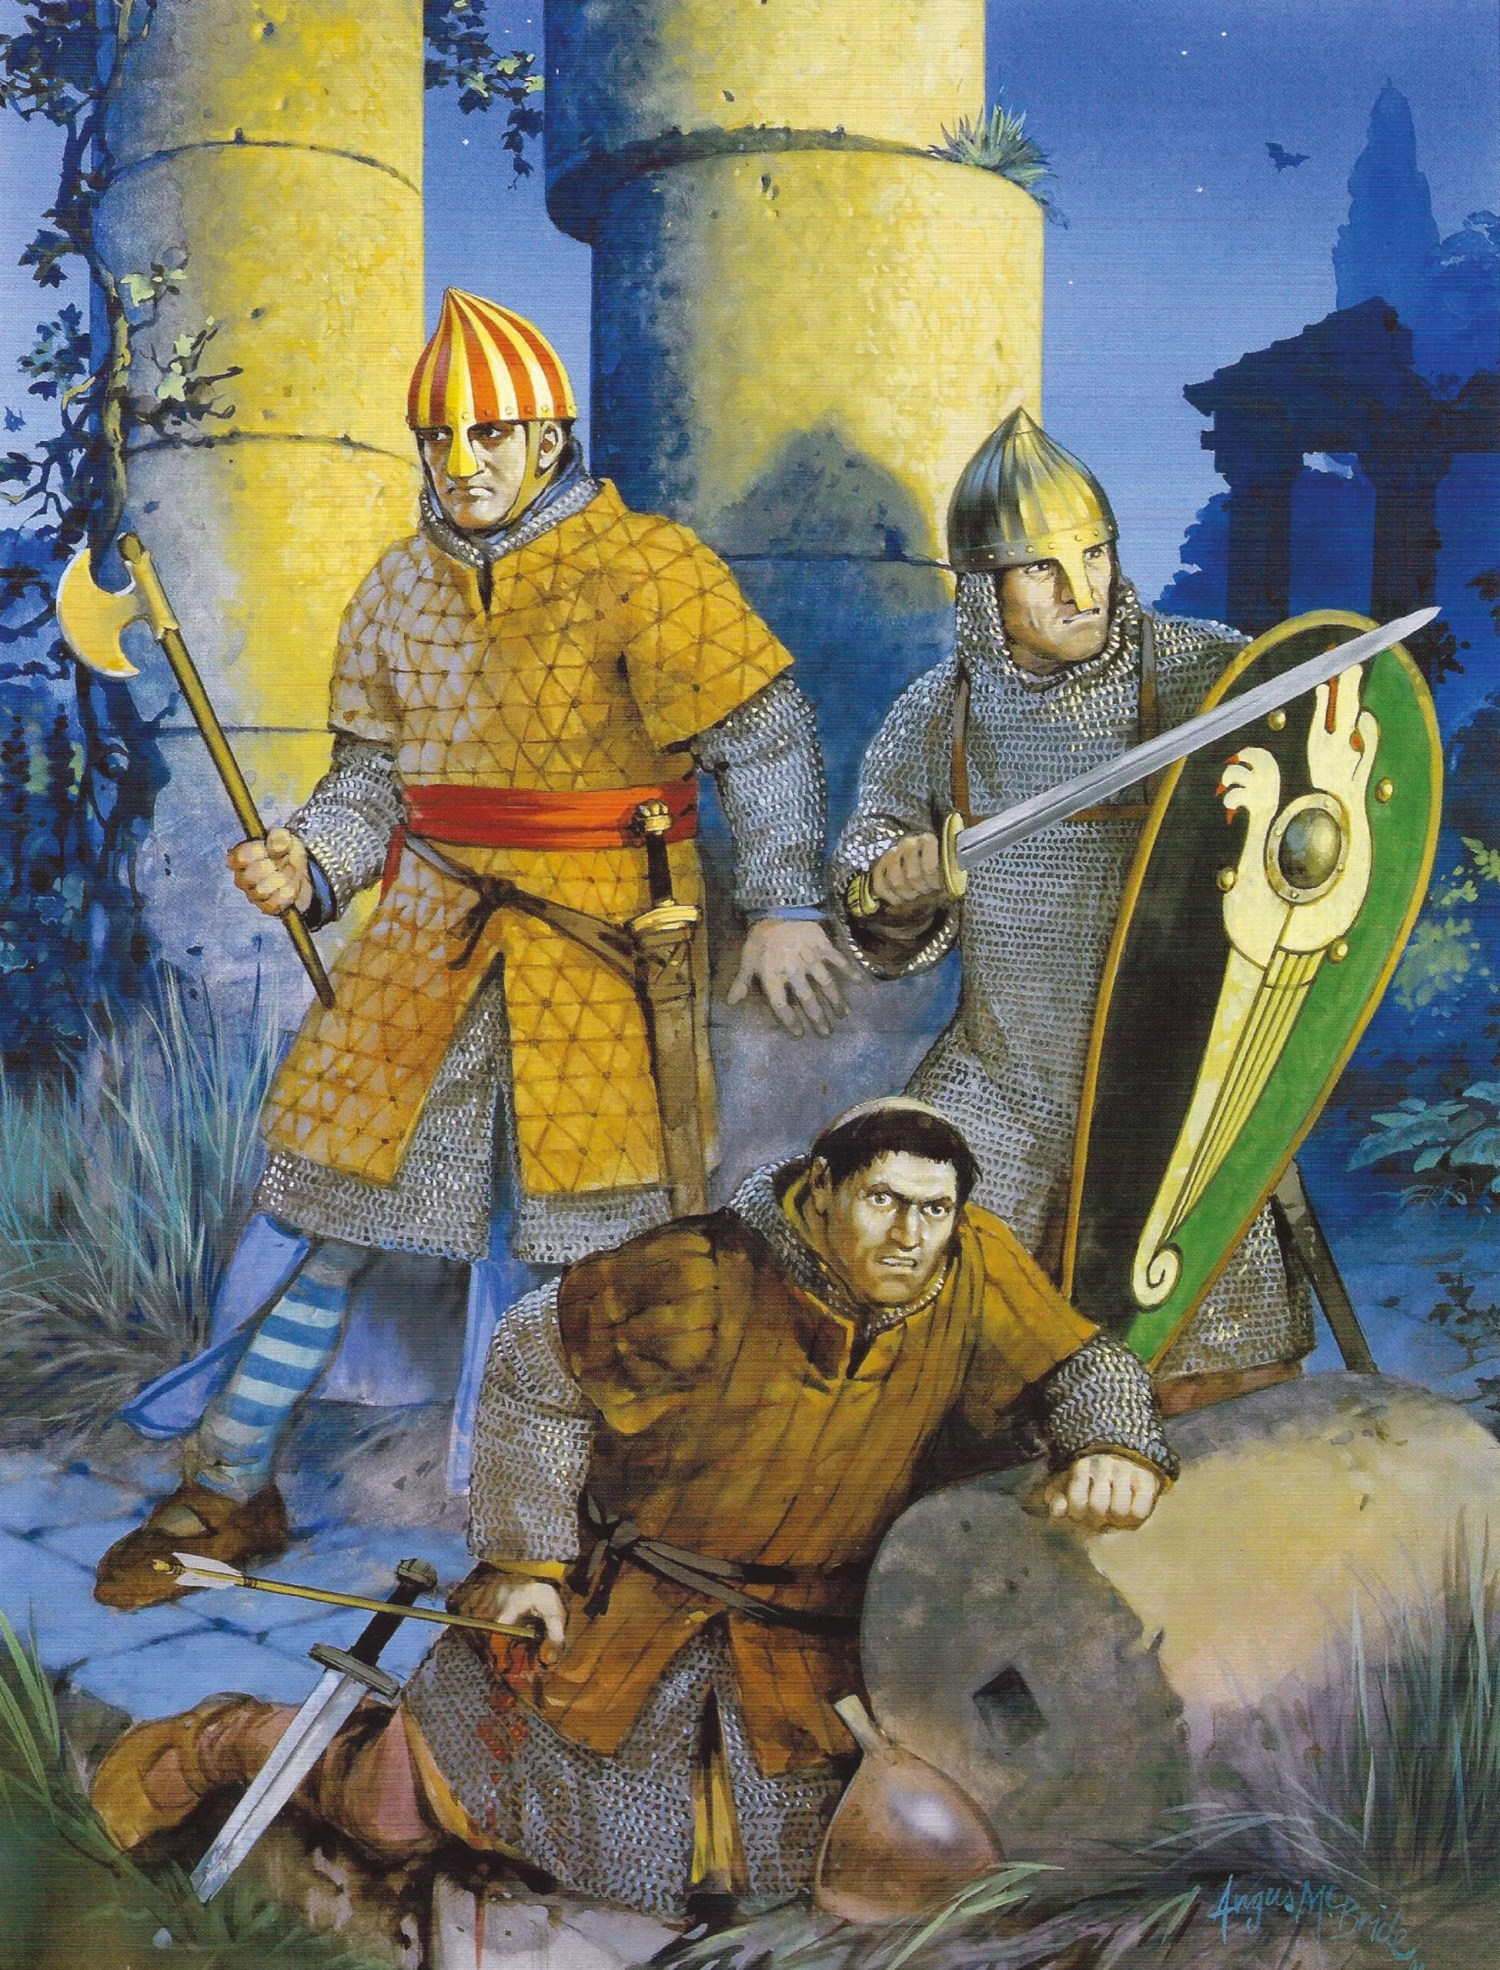 left Norman soldiers in Sicily. An imaginative reconstruction by Angus McBride. The campaign of conquest was a triumph of elite feudal chivalry over much larger numbers of lightly equipped warriors.